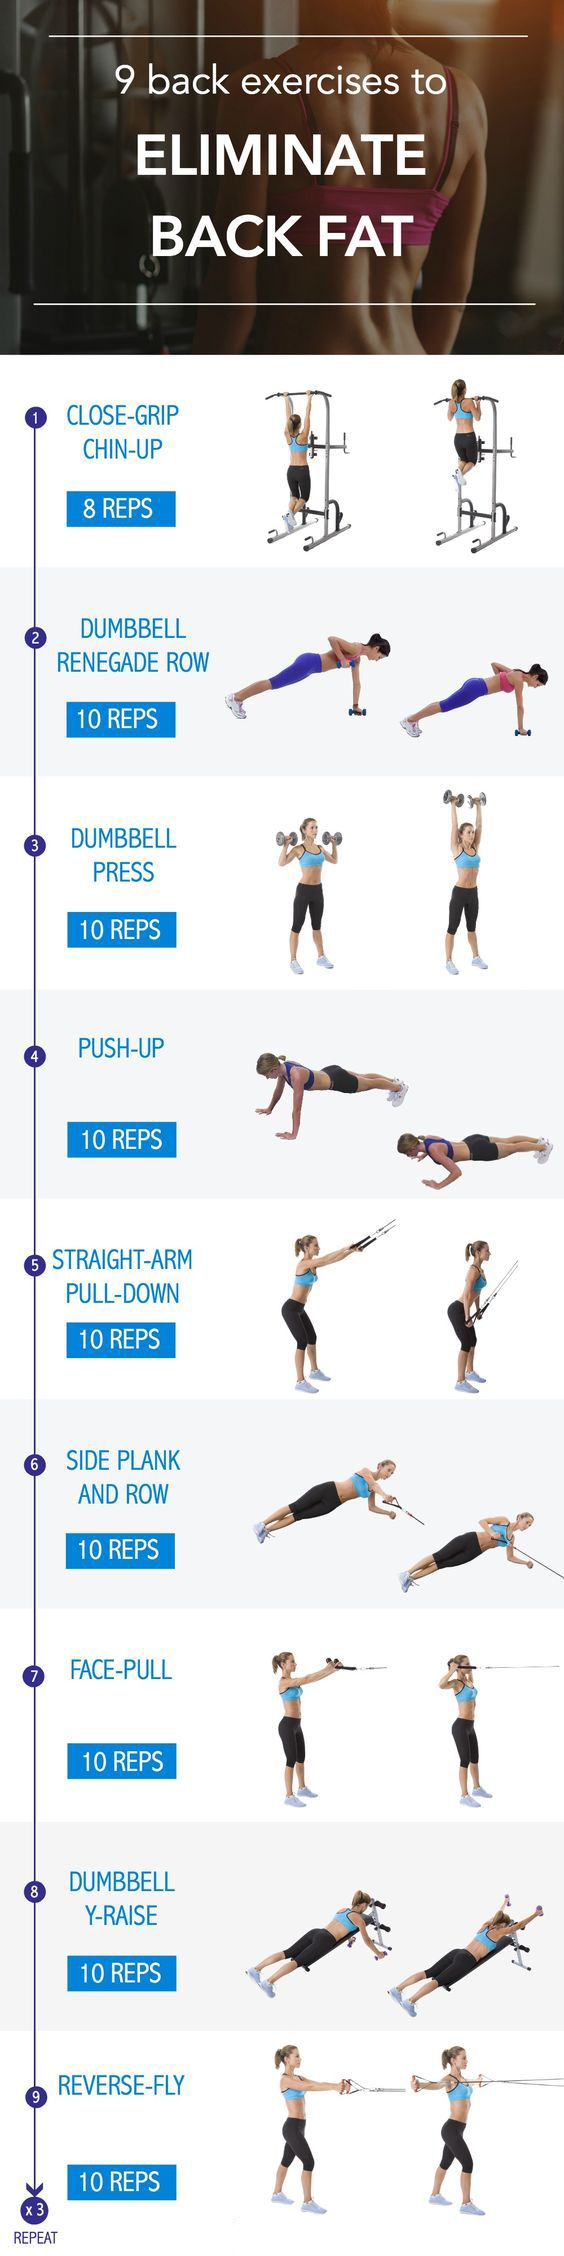 Back Fat Workout | Posted By: CustomWeightLossProgram.com